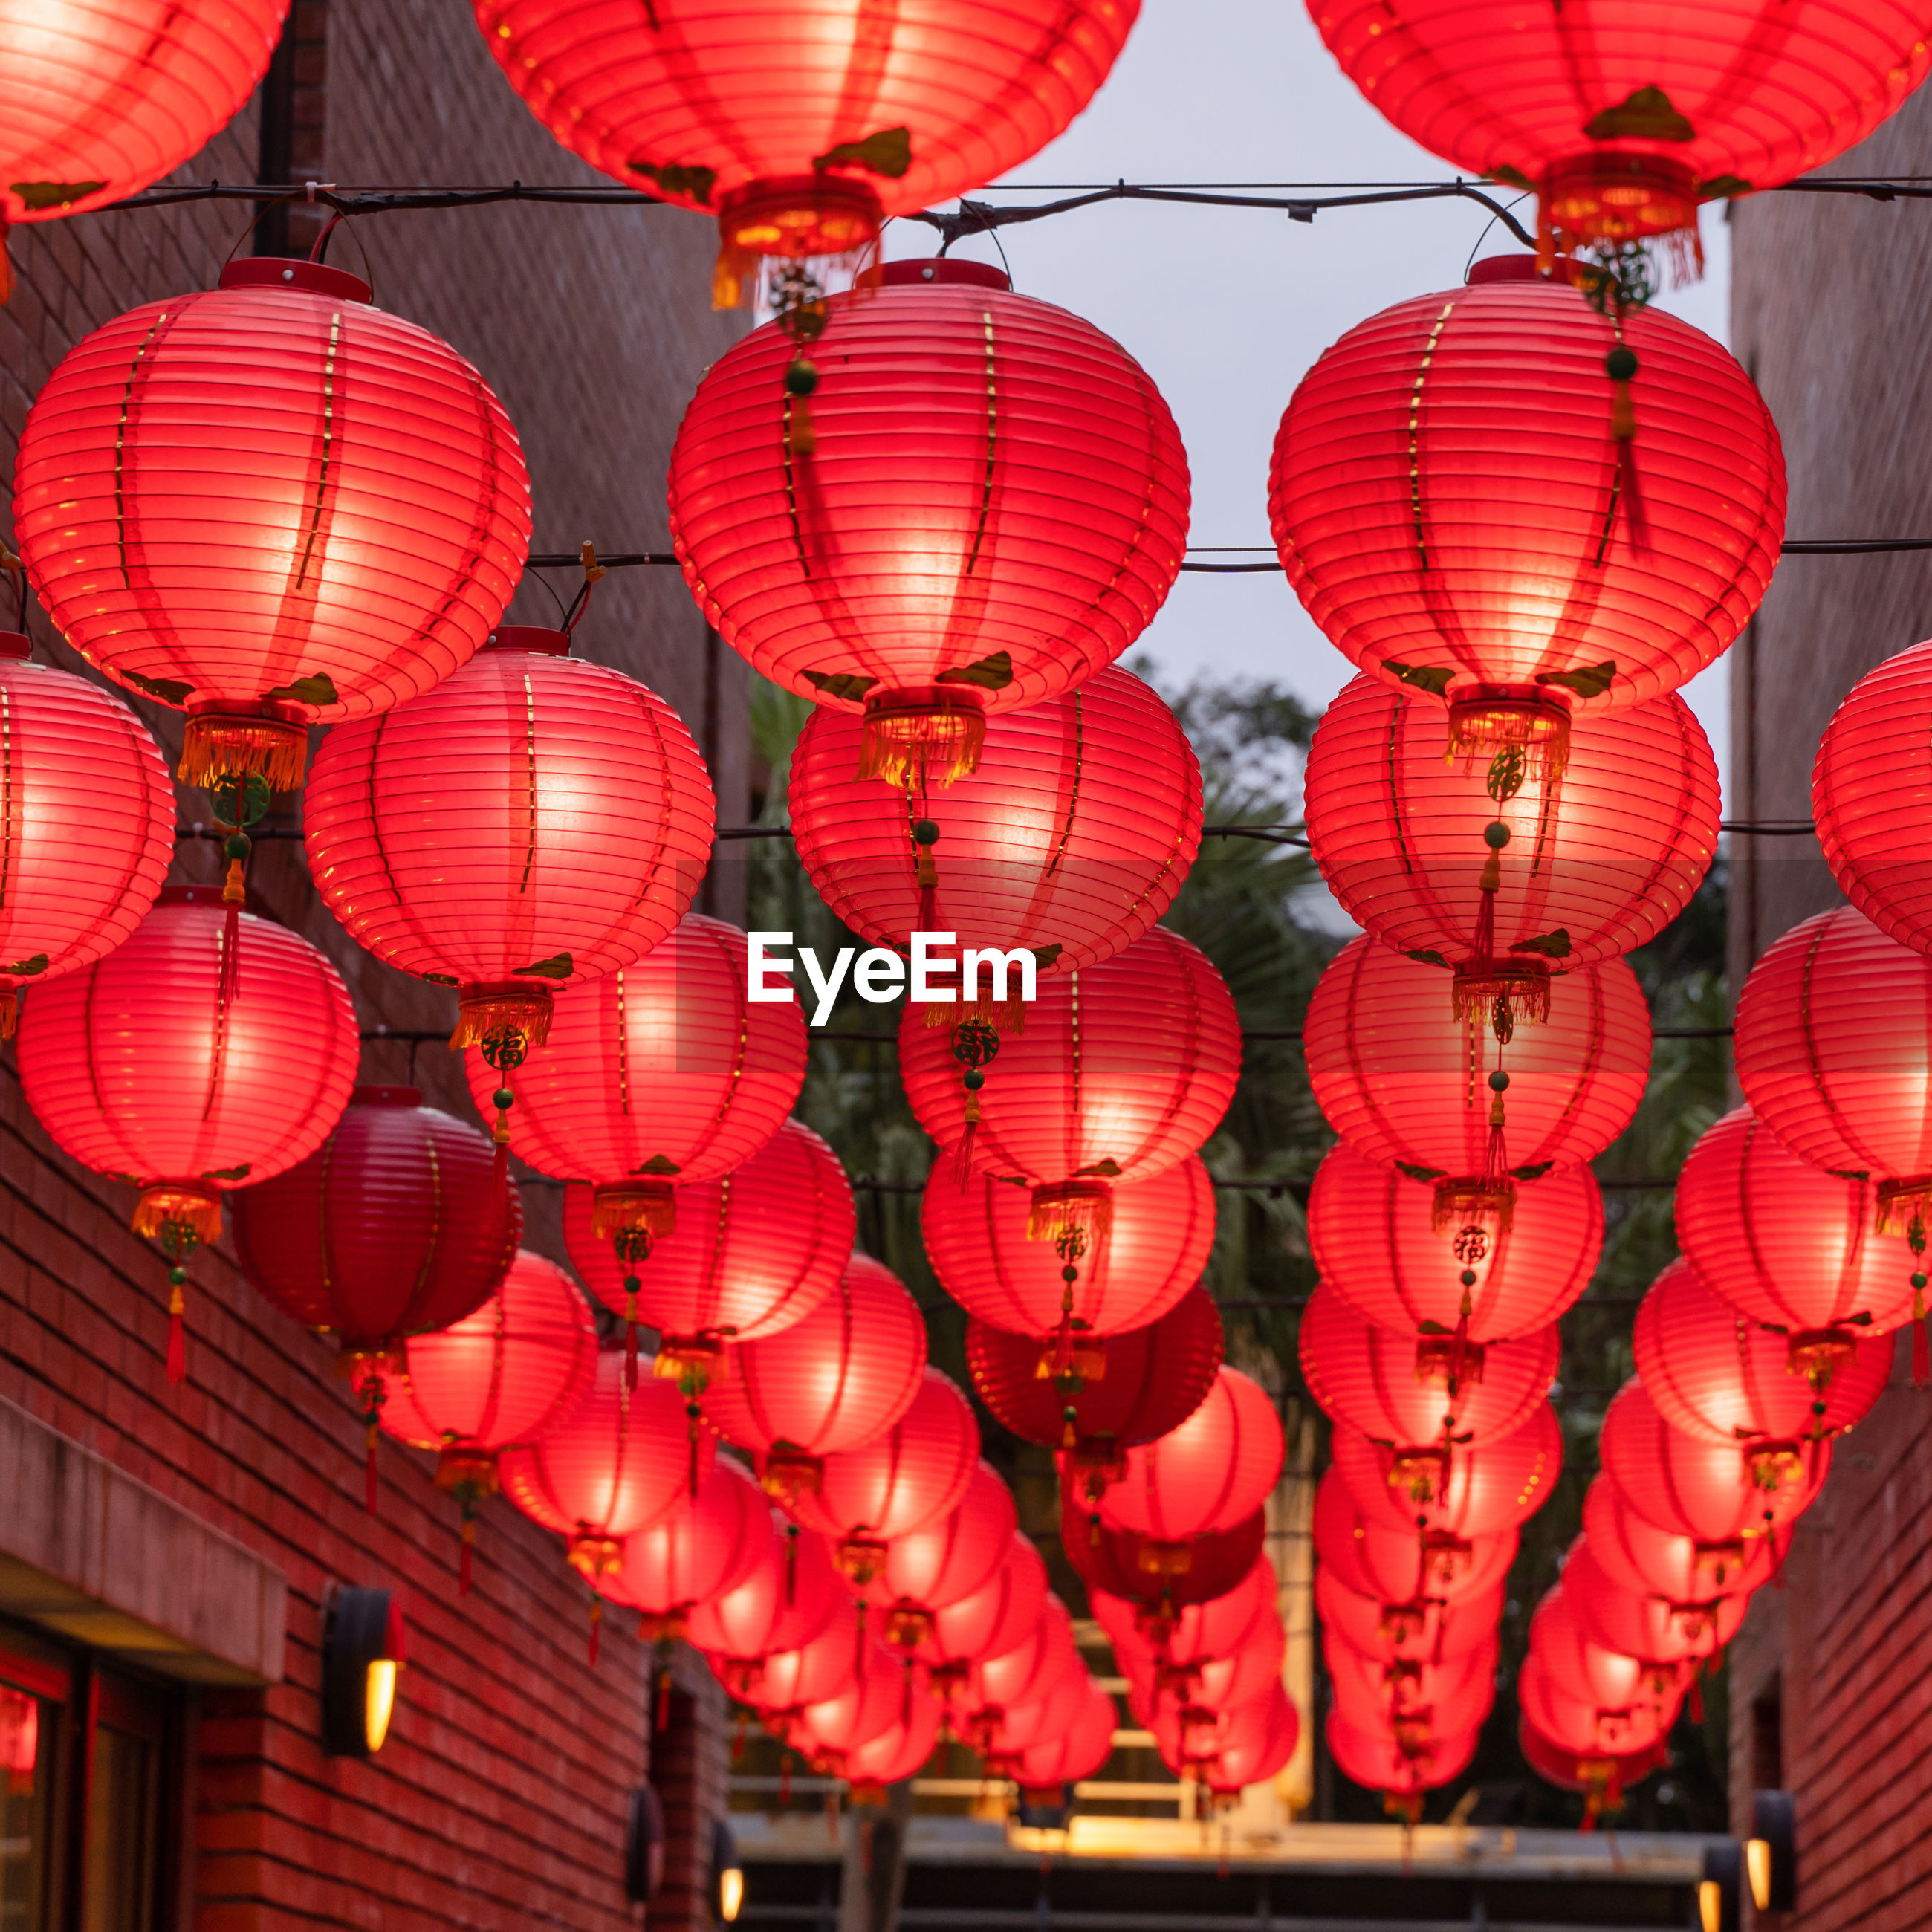 LOW ANGLE VIEW OF LANTERNS HANGING AT CEILING